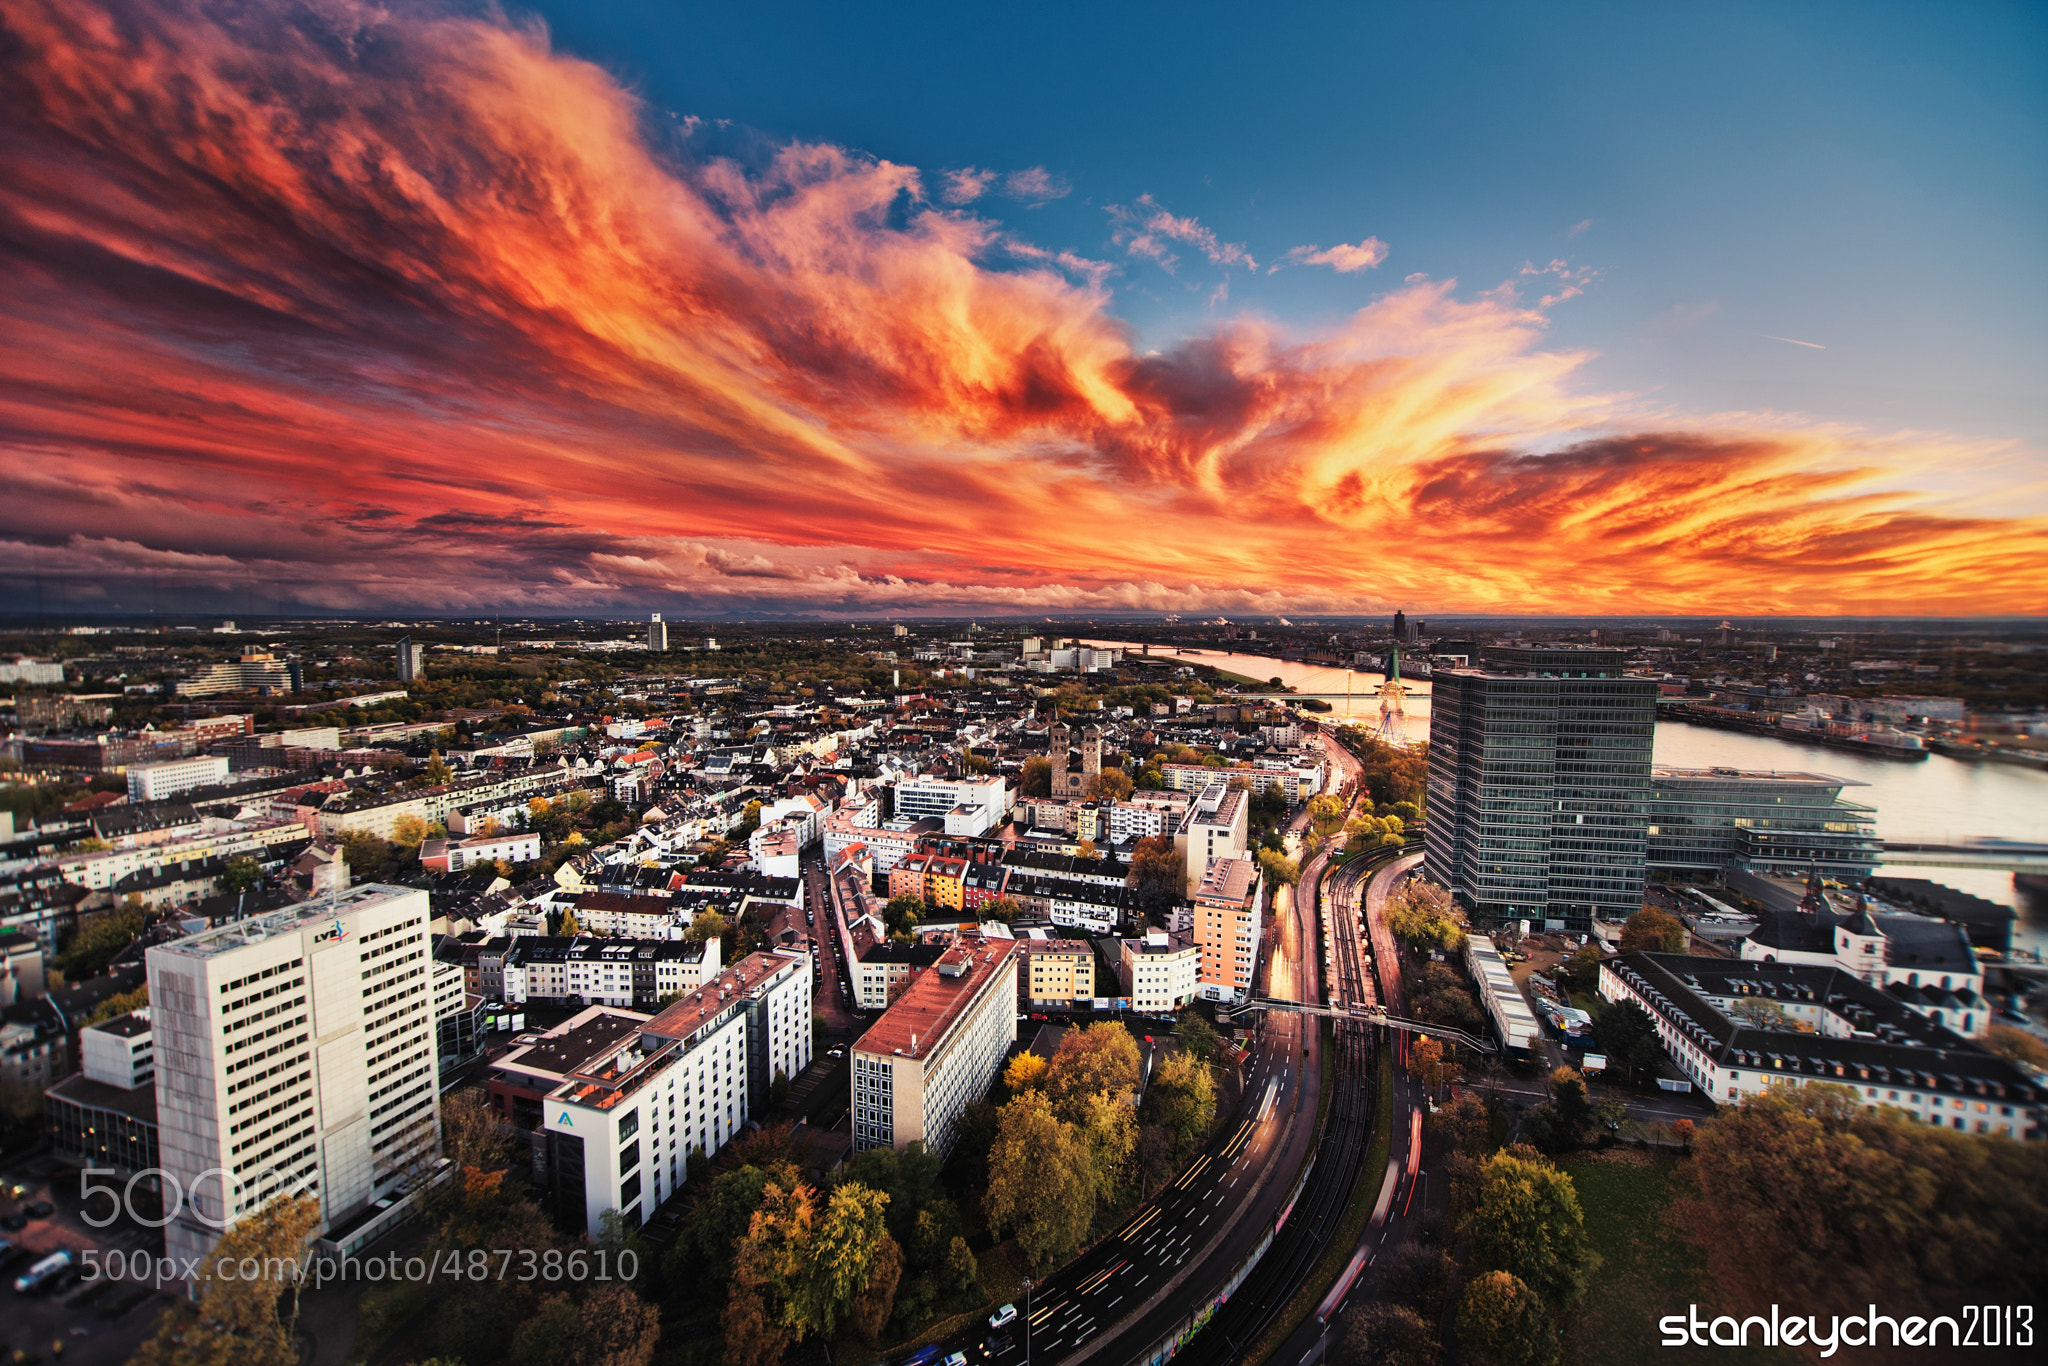 Photograph The Burning Phoenix——City of Cologne by Stanley Chen Xi on 500px